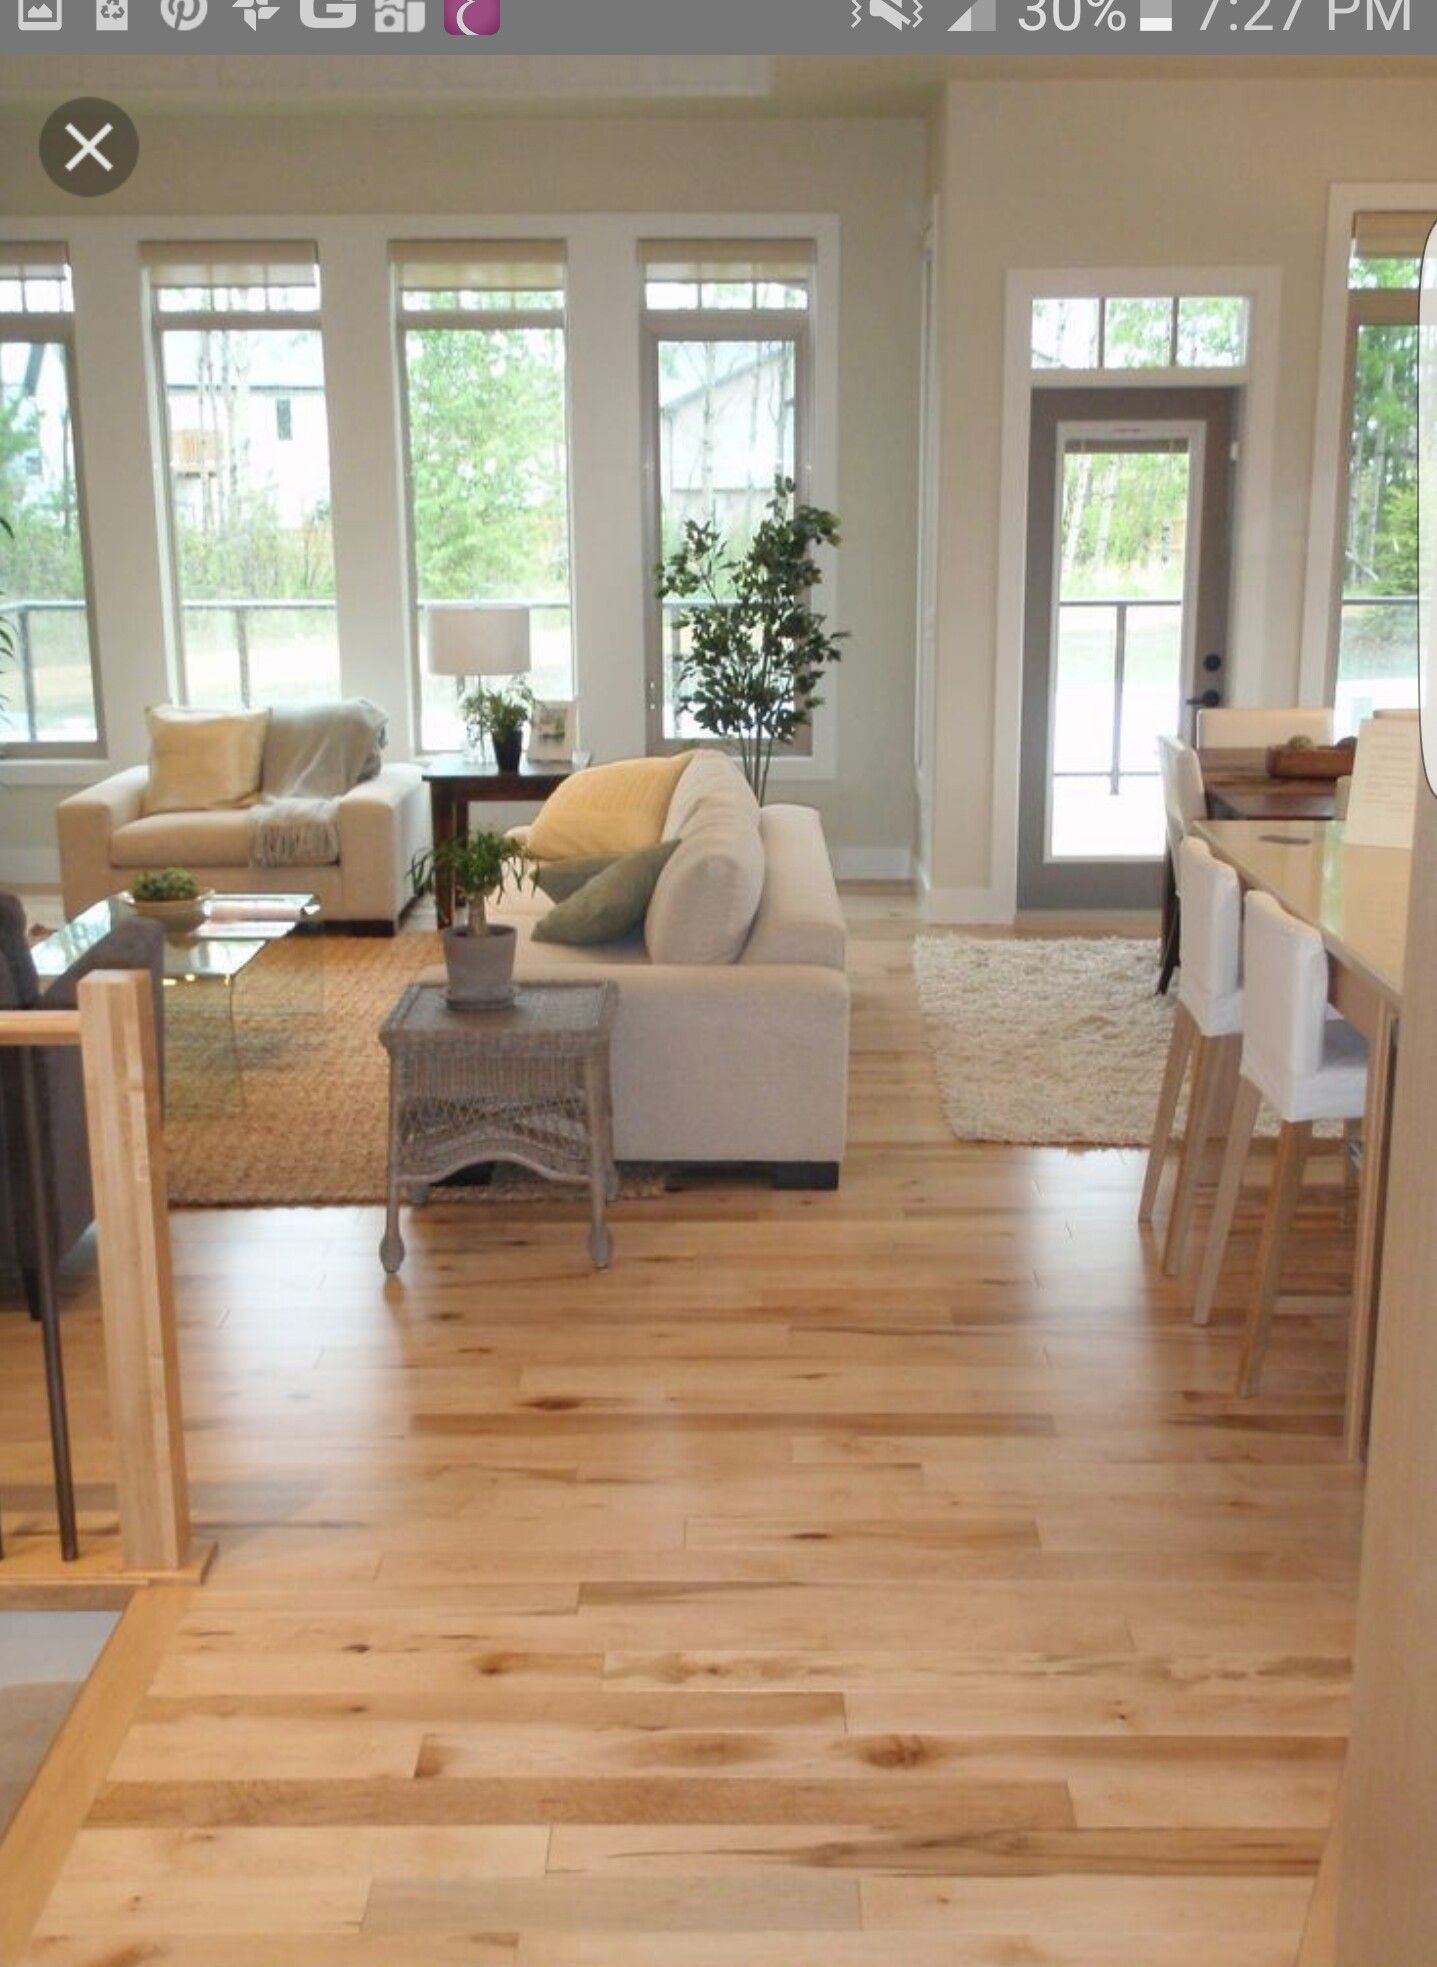 maple flooring with very offwhite walls (pinkish? and